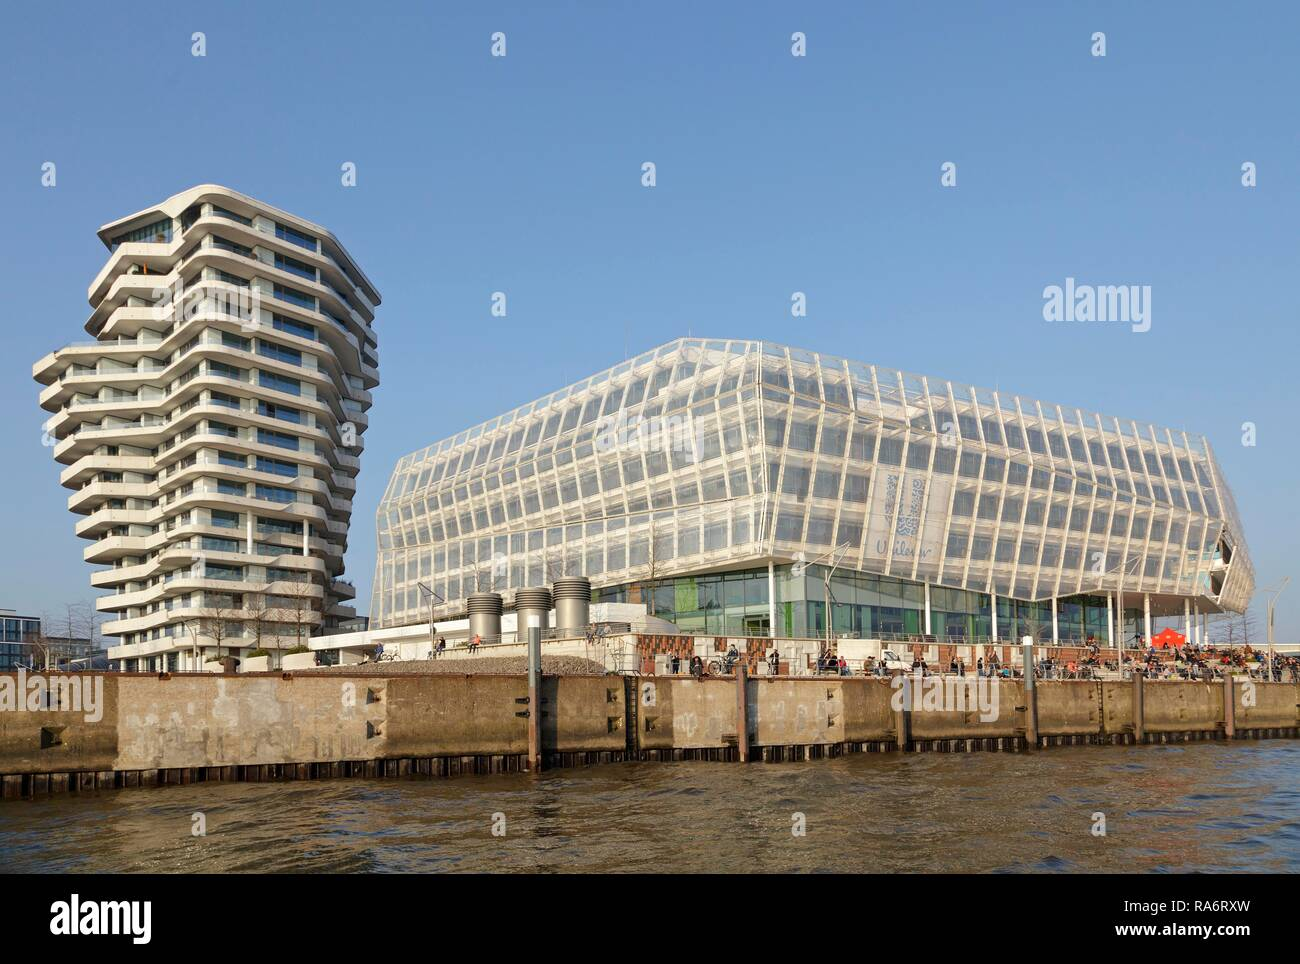 Marco Polo Tower and the Unilever Haus, HafenCity, Hamburg, Germany - Stock Image